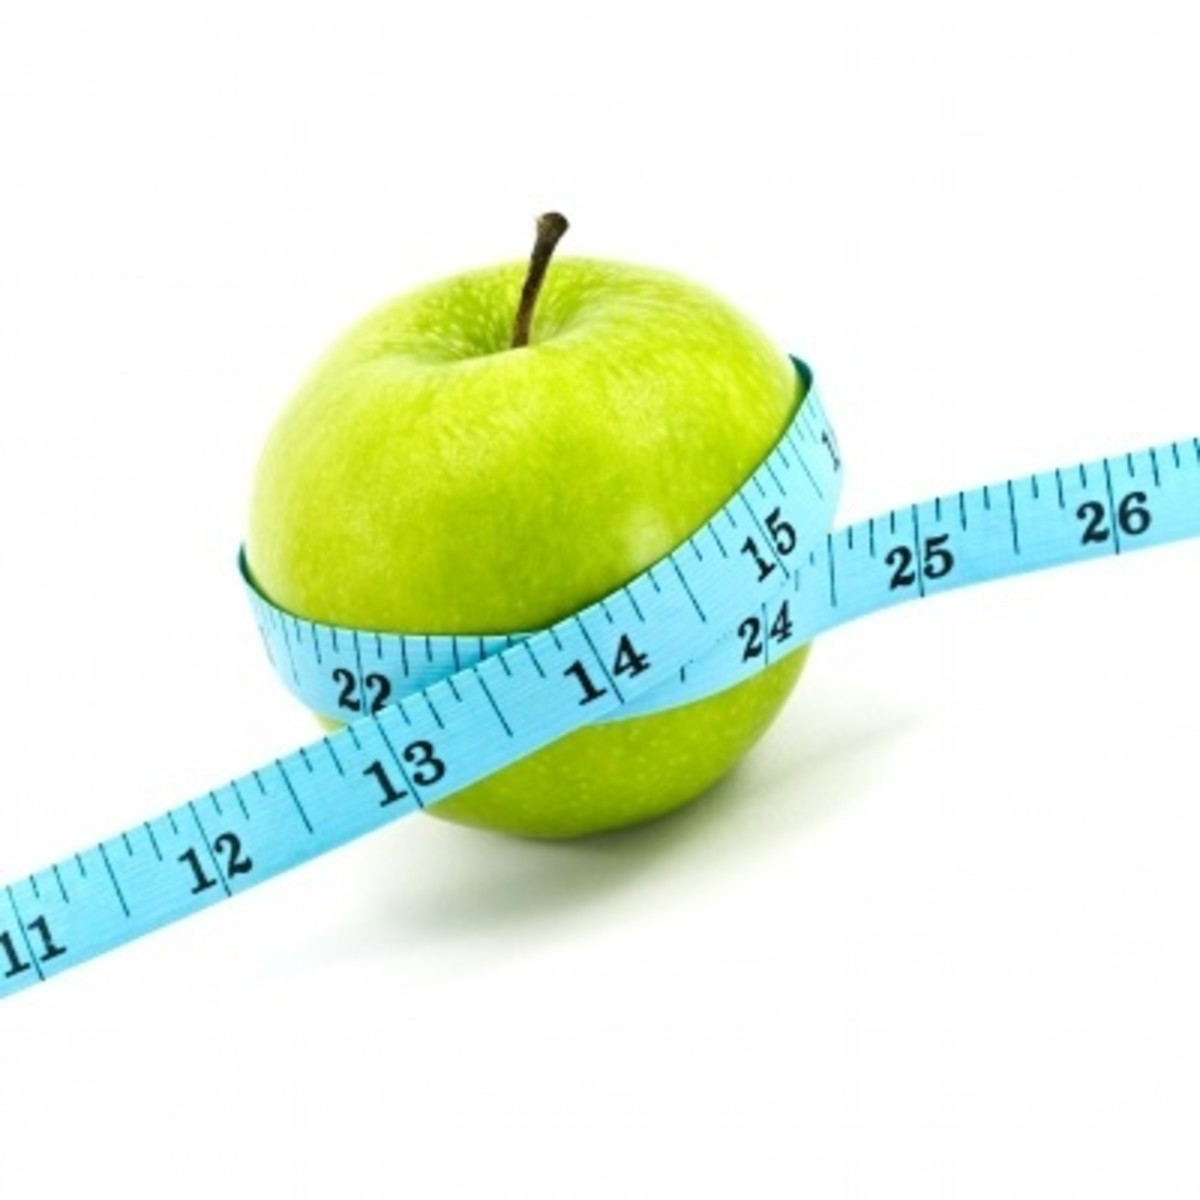 Having an apple-shaped body is more dangerous than having a pear-shaped body.